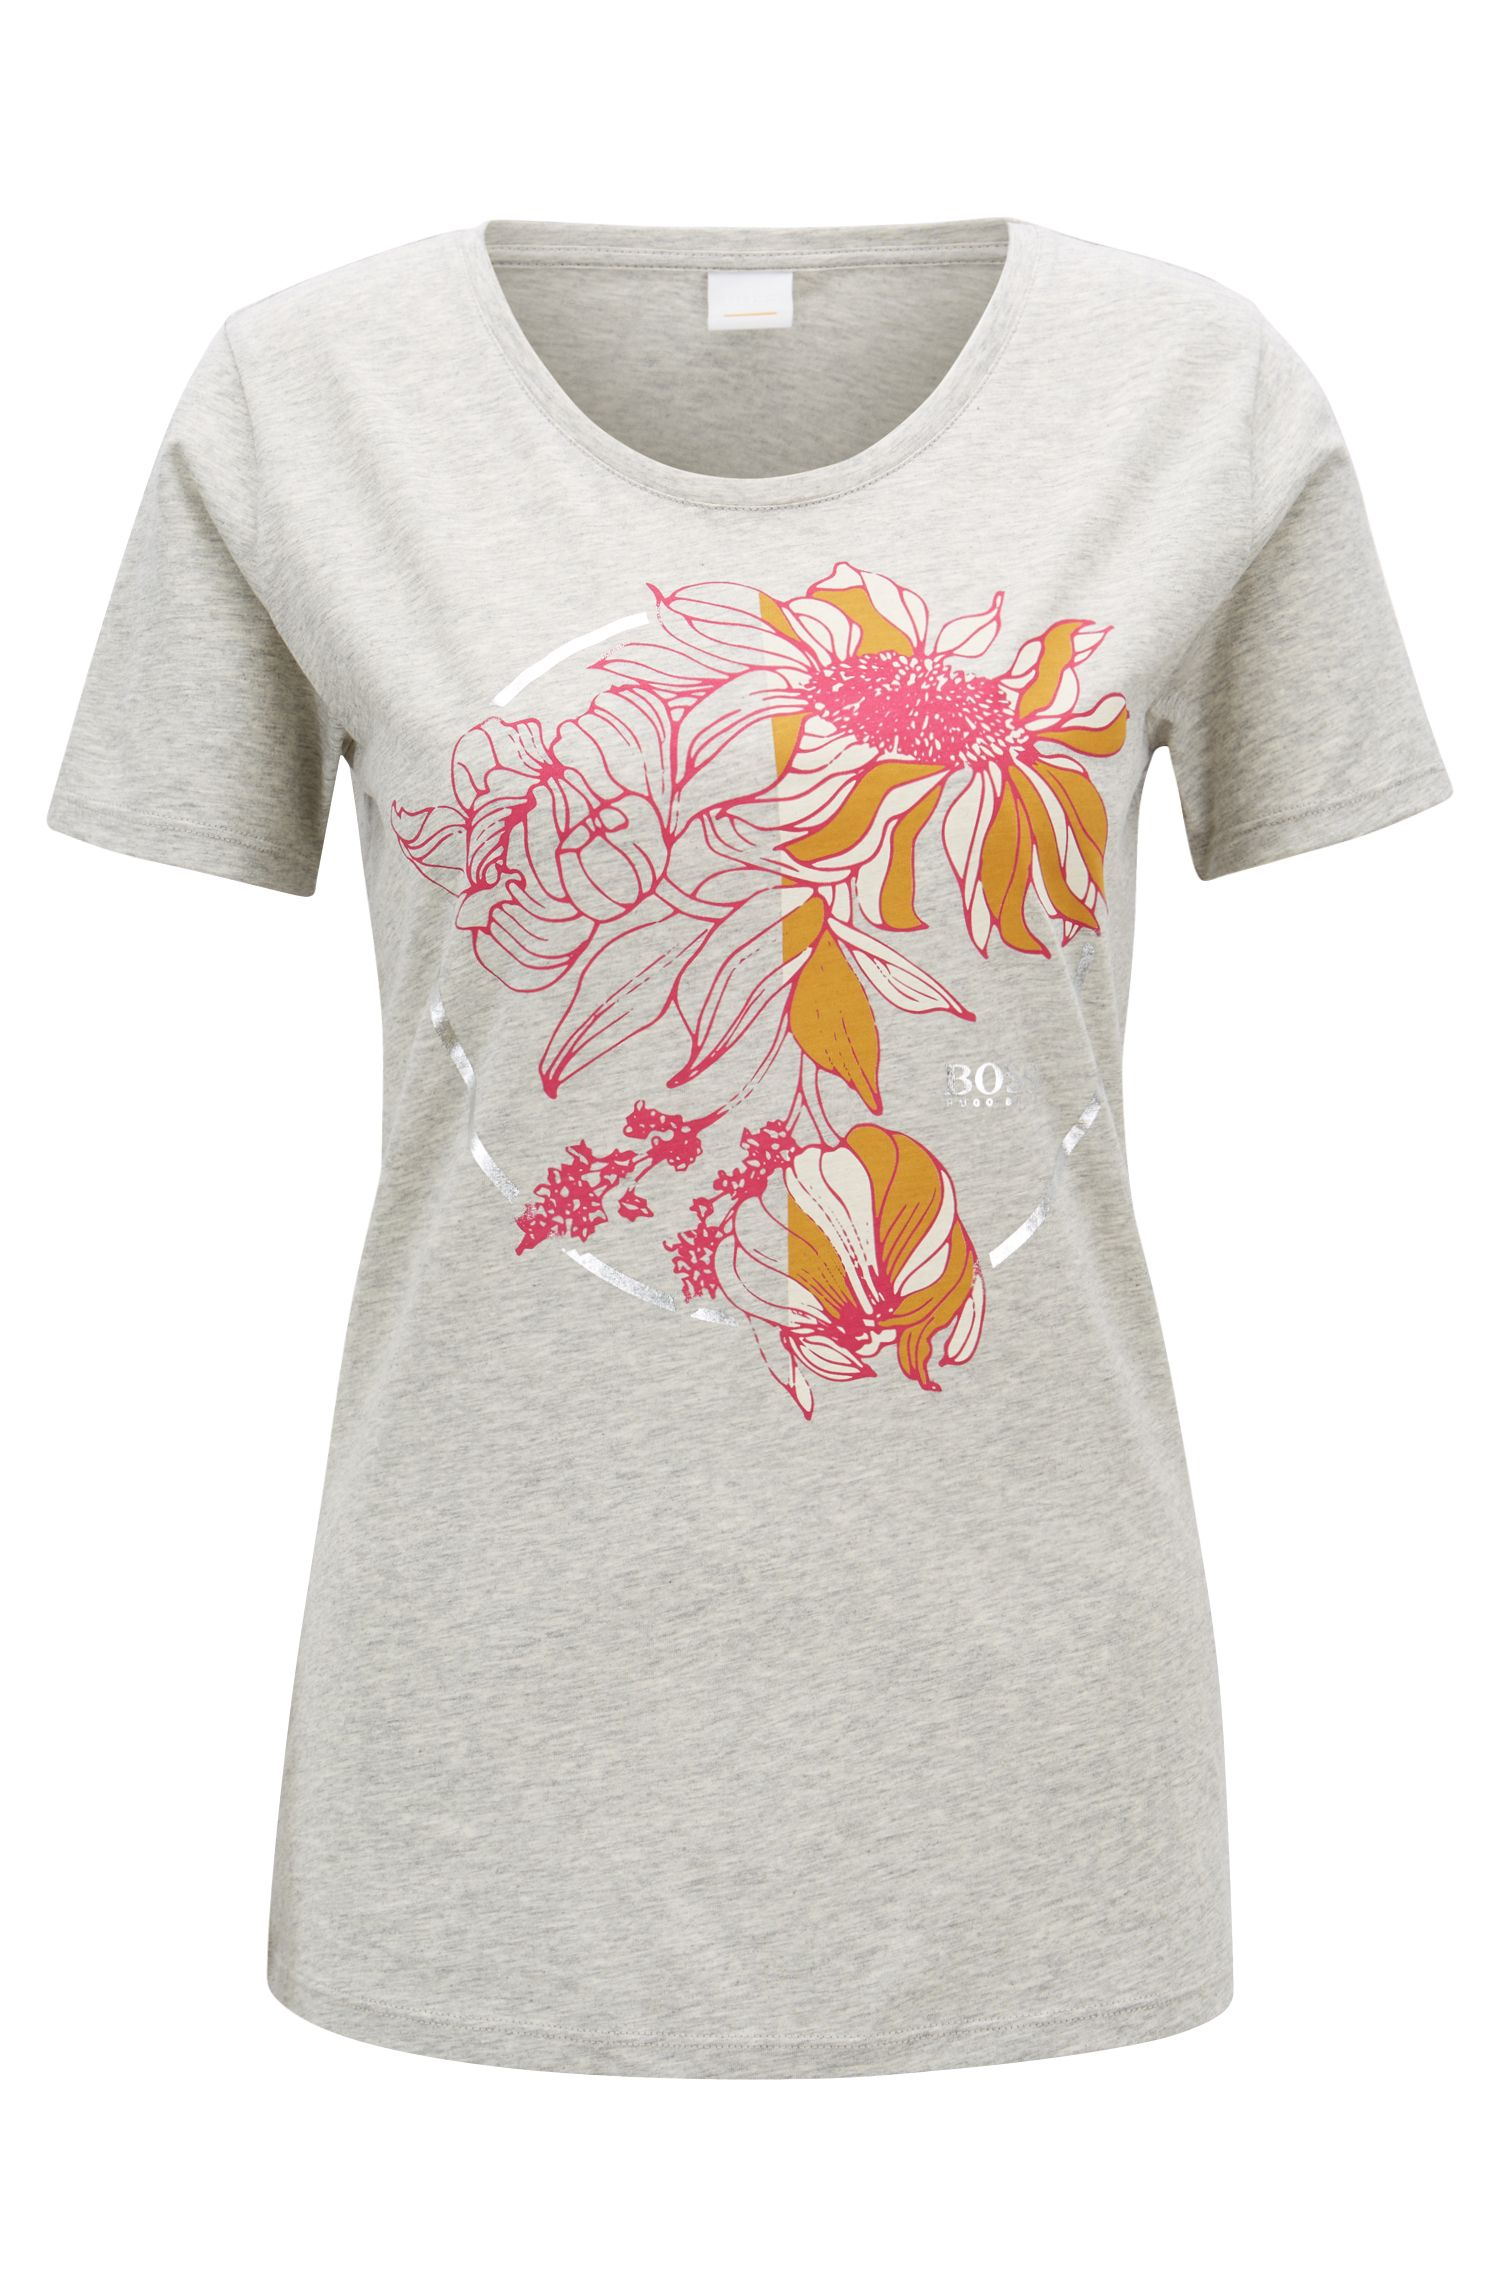 Slim-fit T-shirt in cotton with placement flower print, Silver